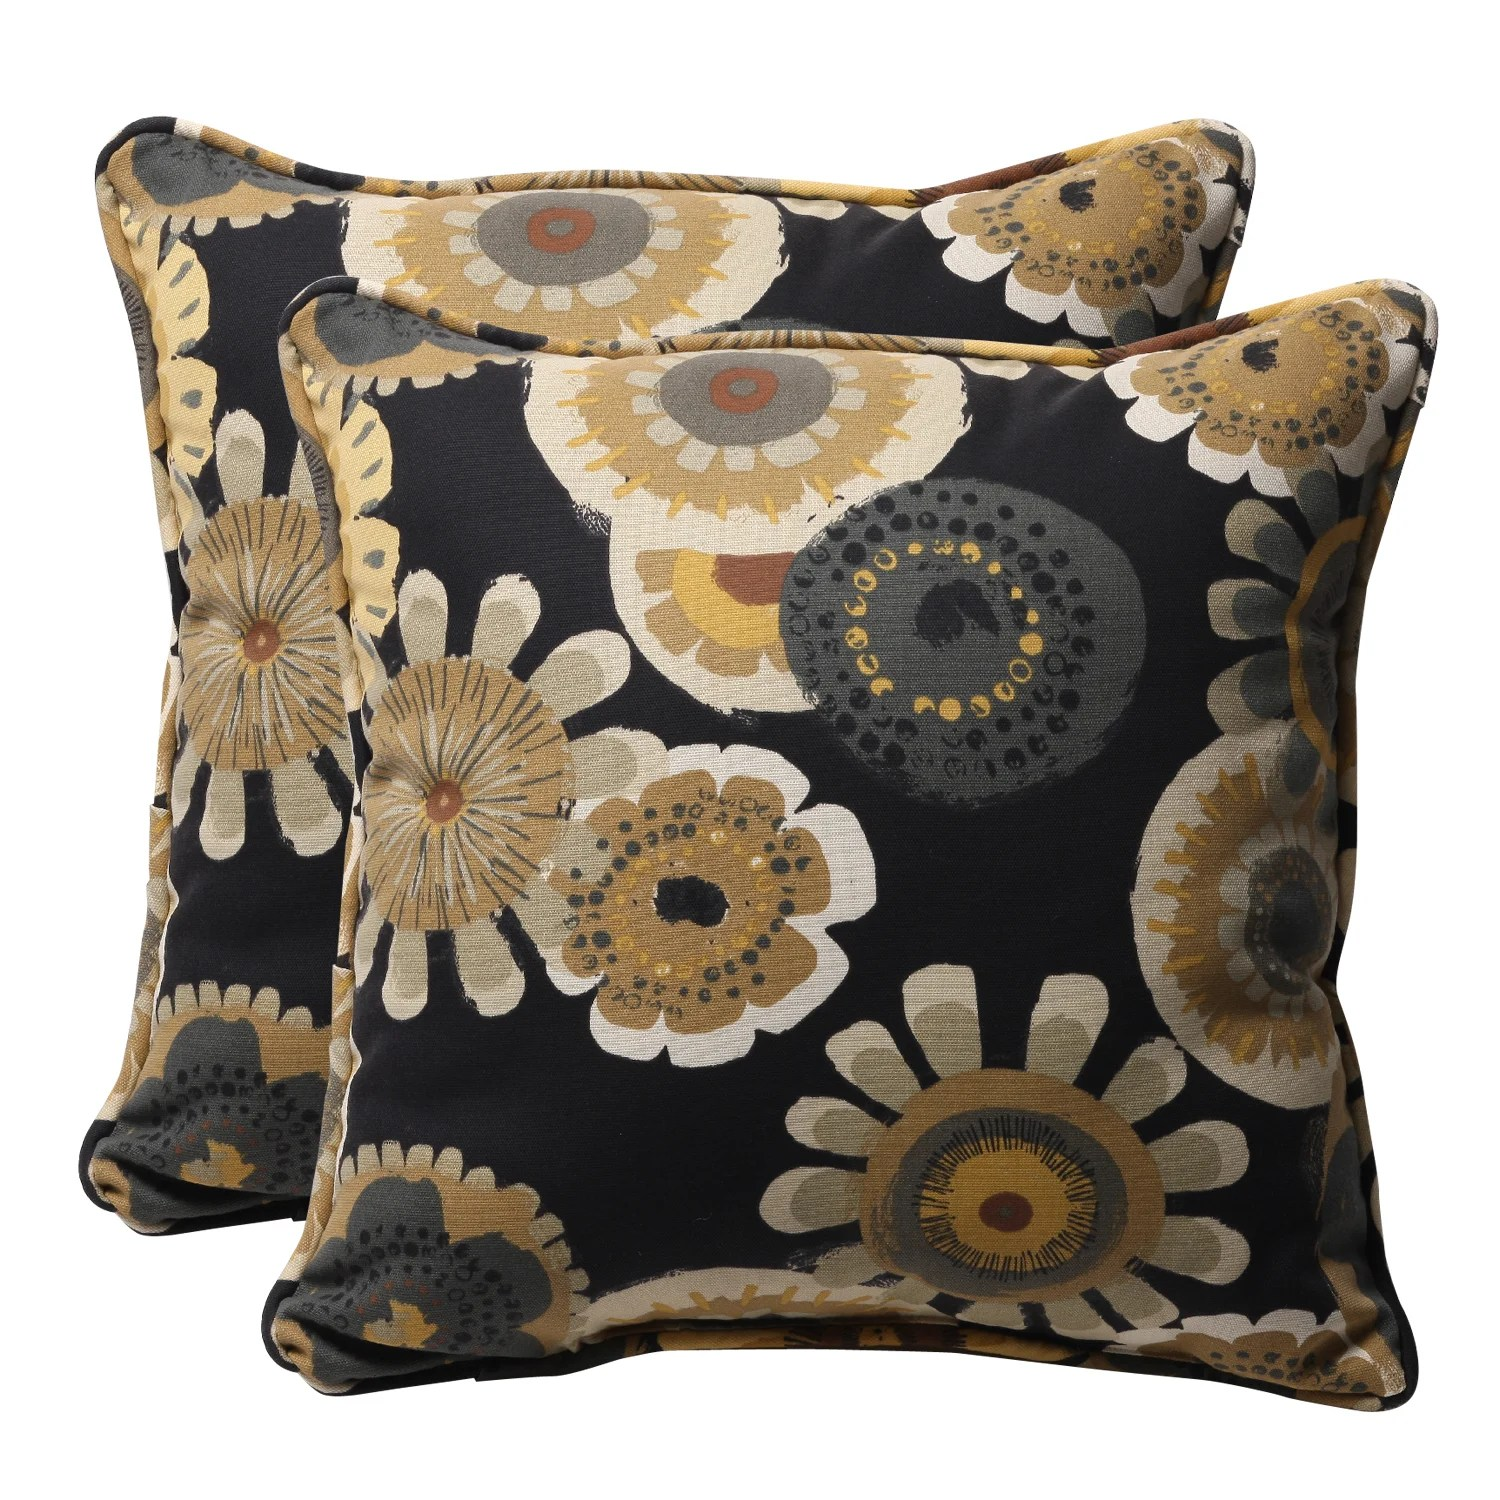 Best Shop Decorative Black Yellow Floral Square Outdoor Toss This Month